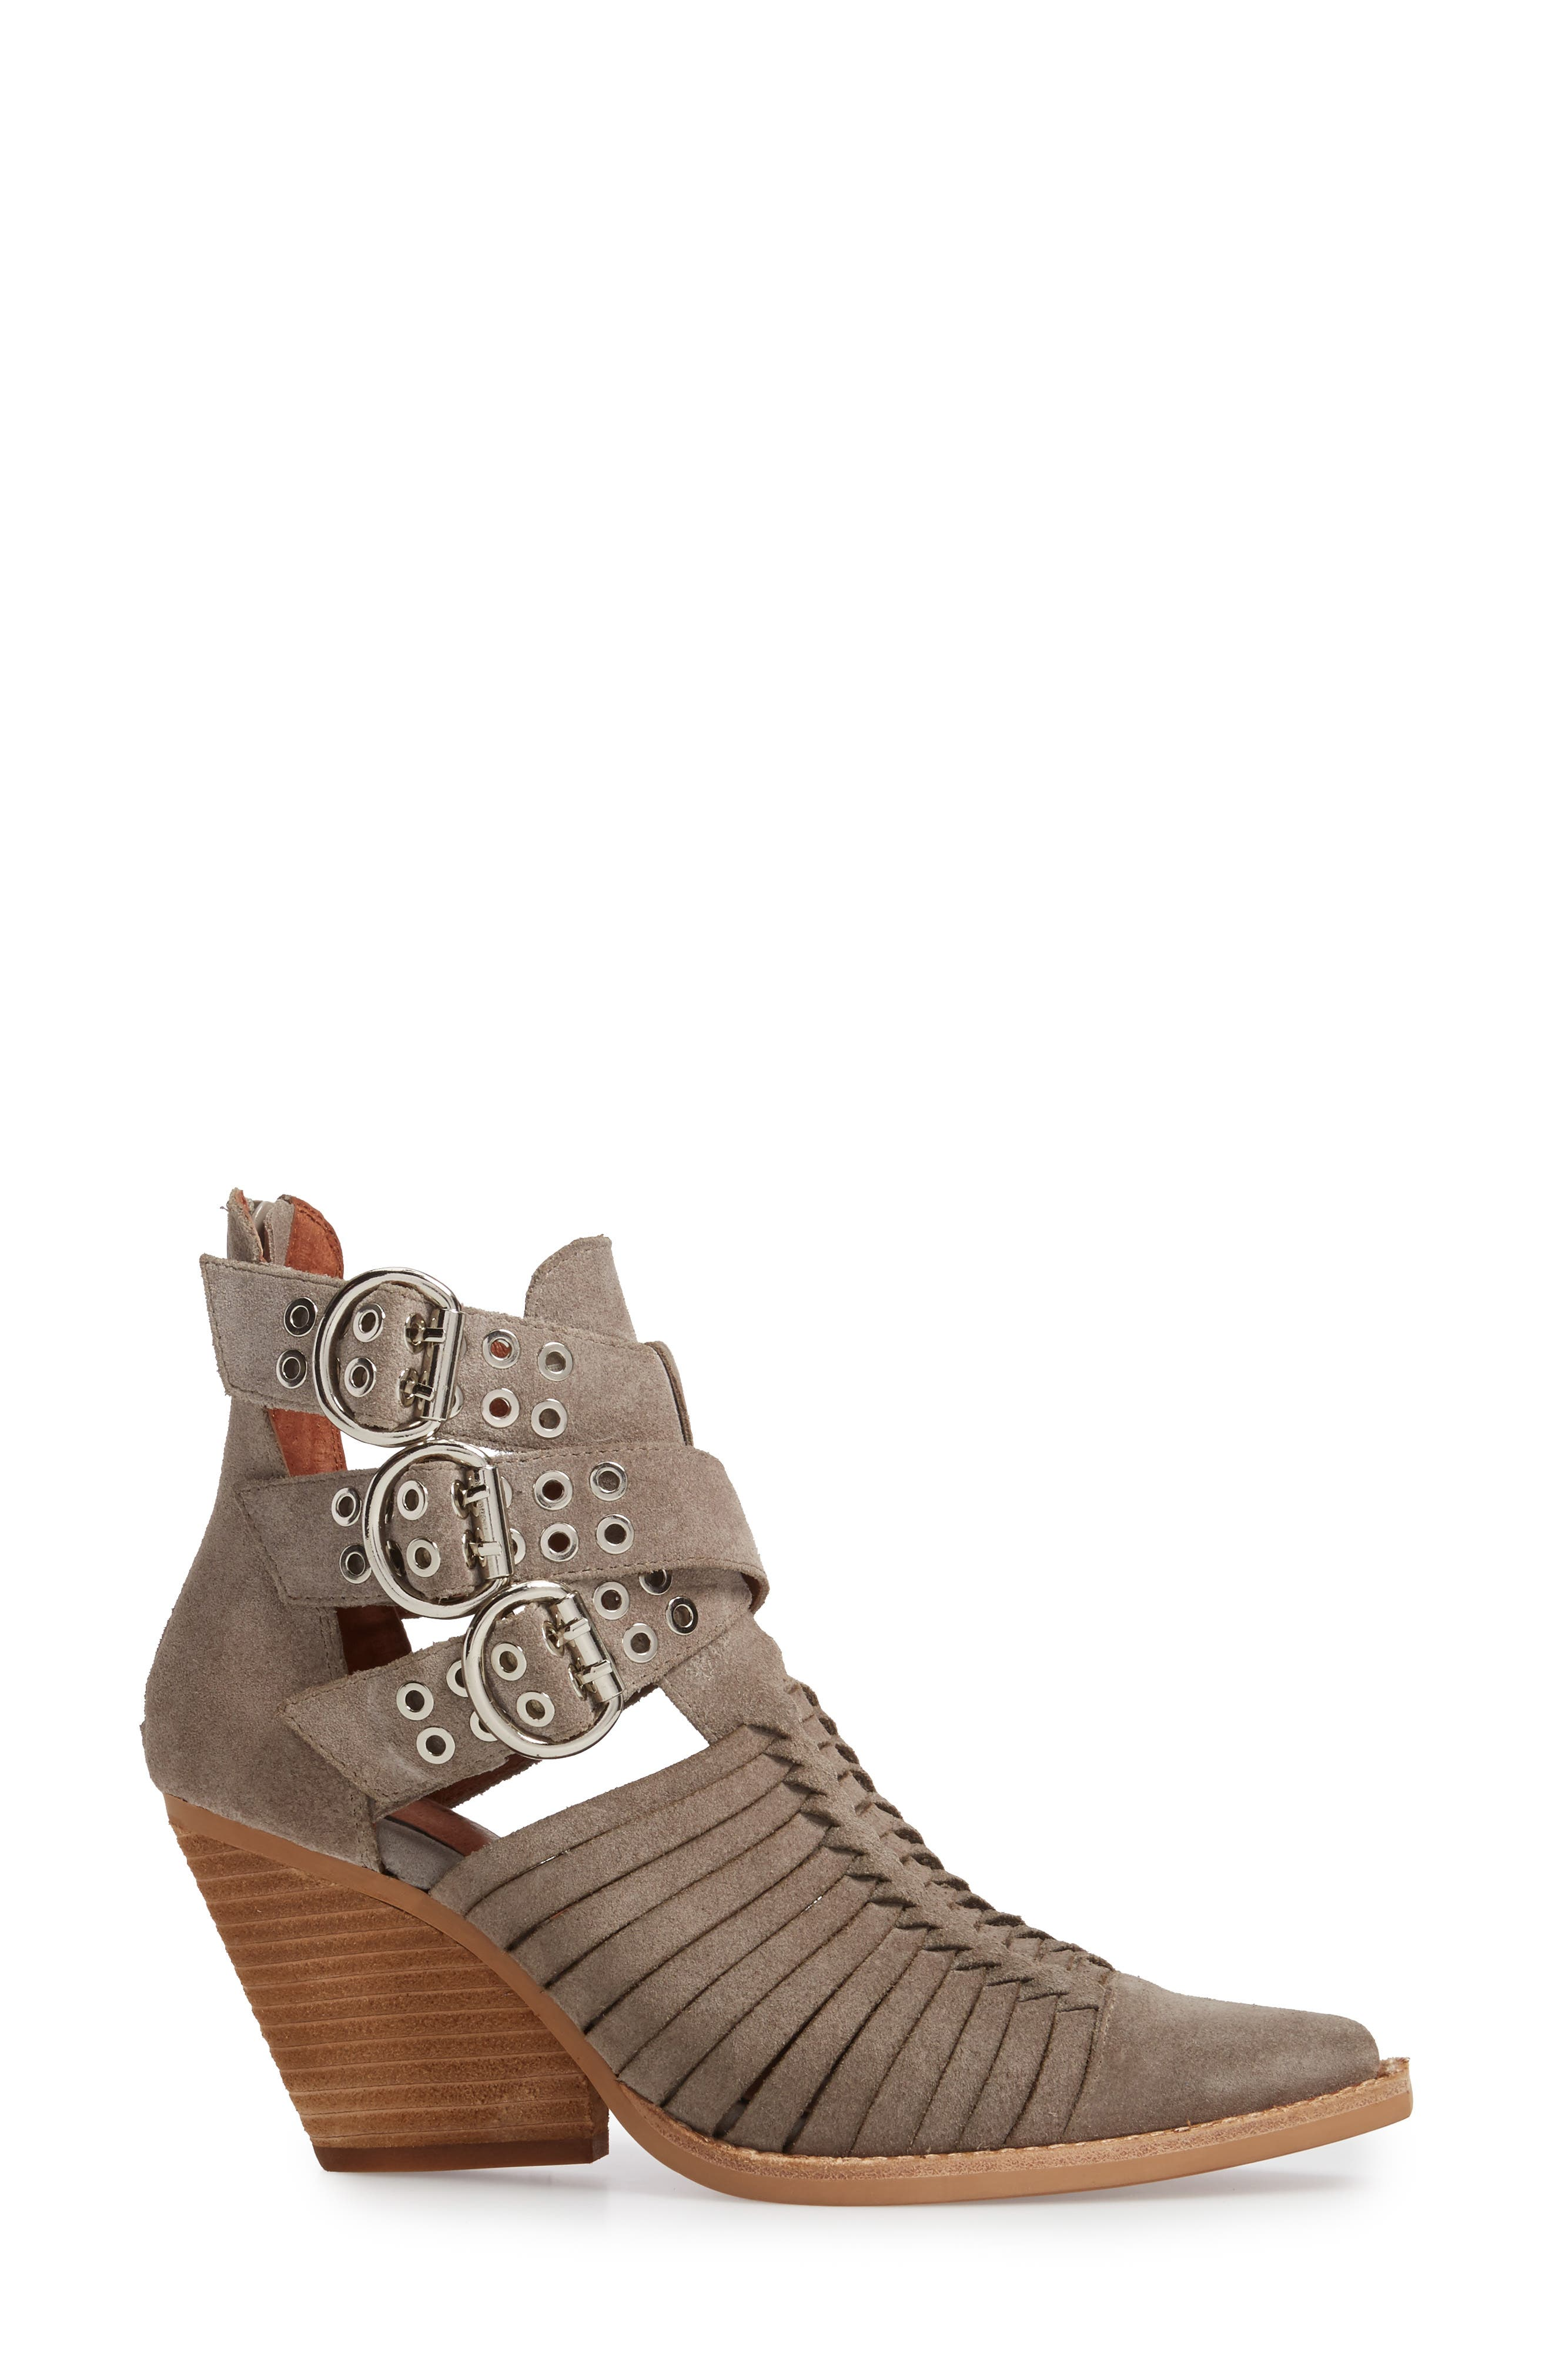 Jamison Bootie,                             Alternate thumbnail 3, color,                             Taupe Oiled Suede